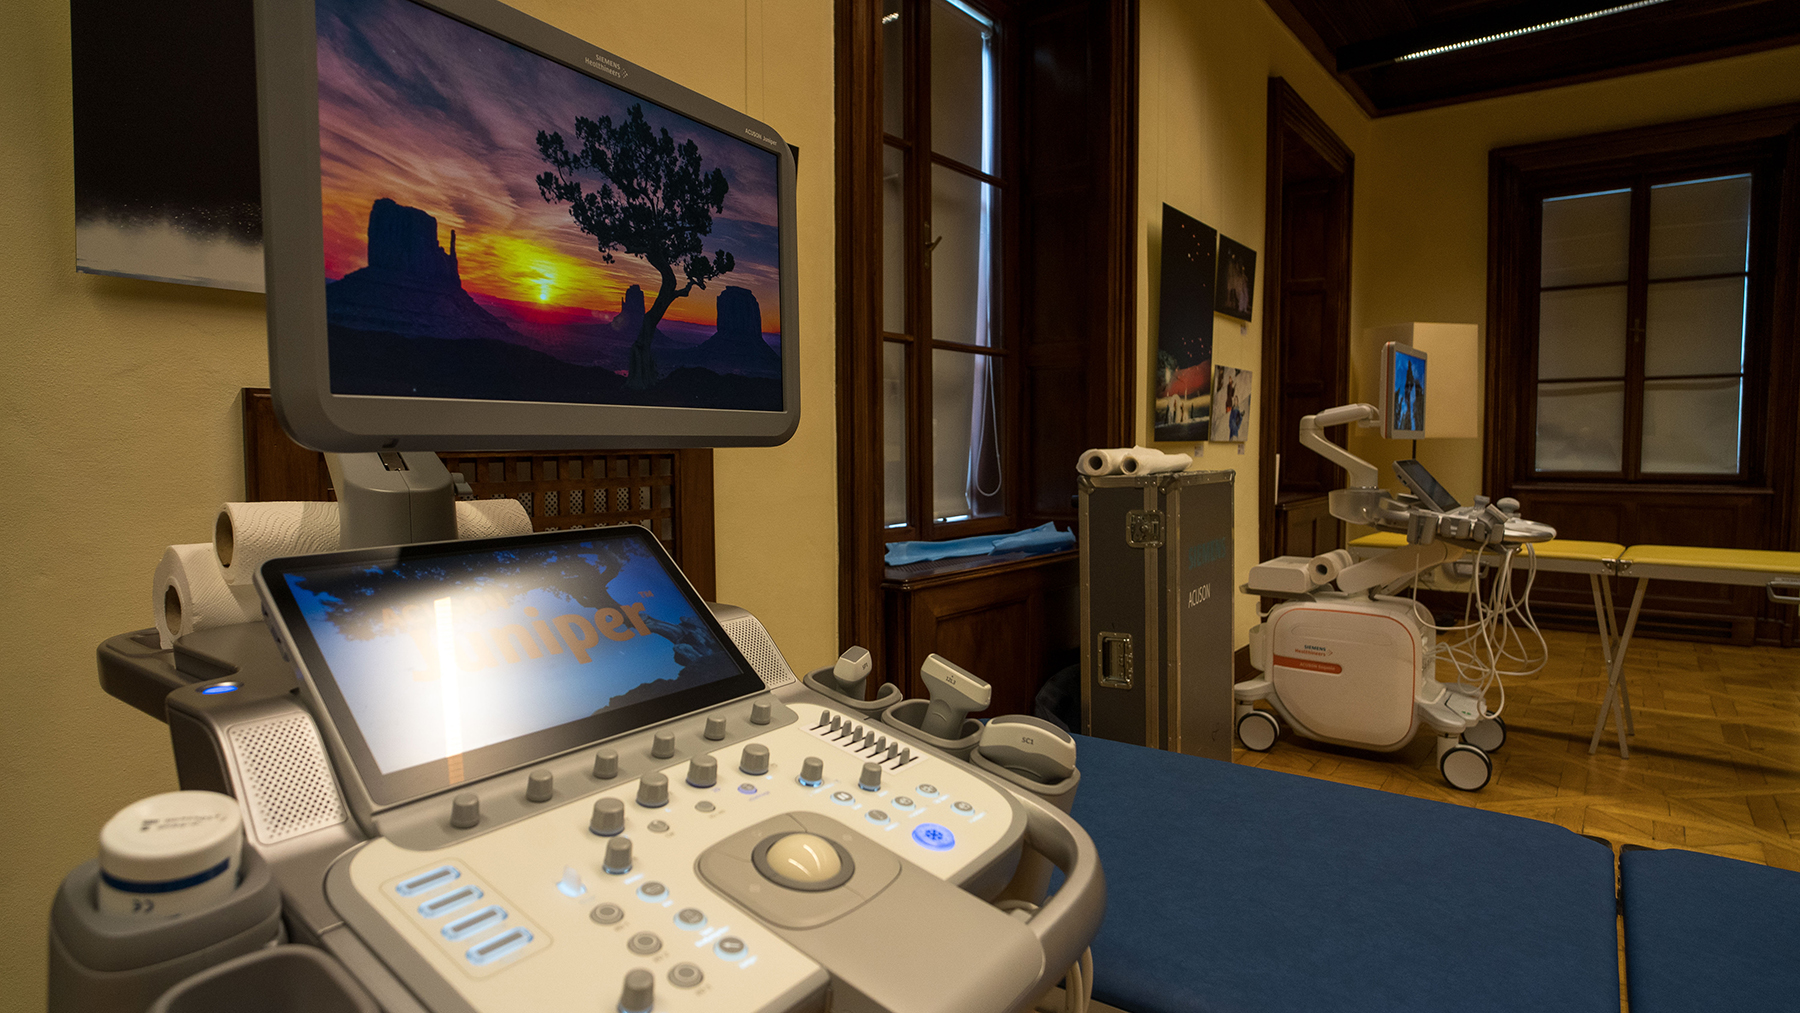 Siemens Ultrasound Workshops